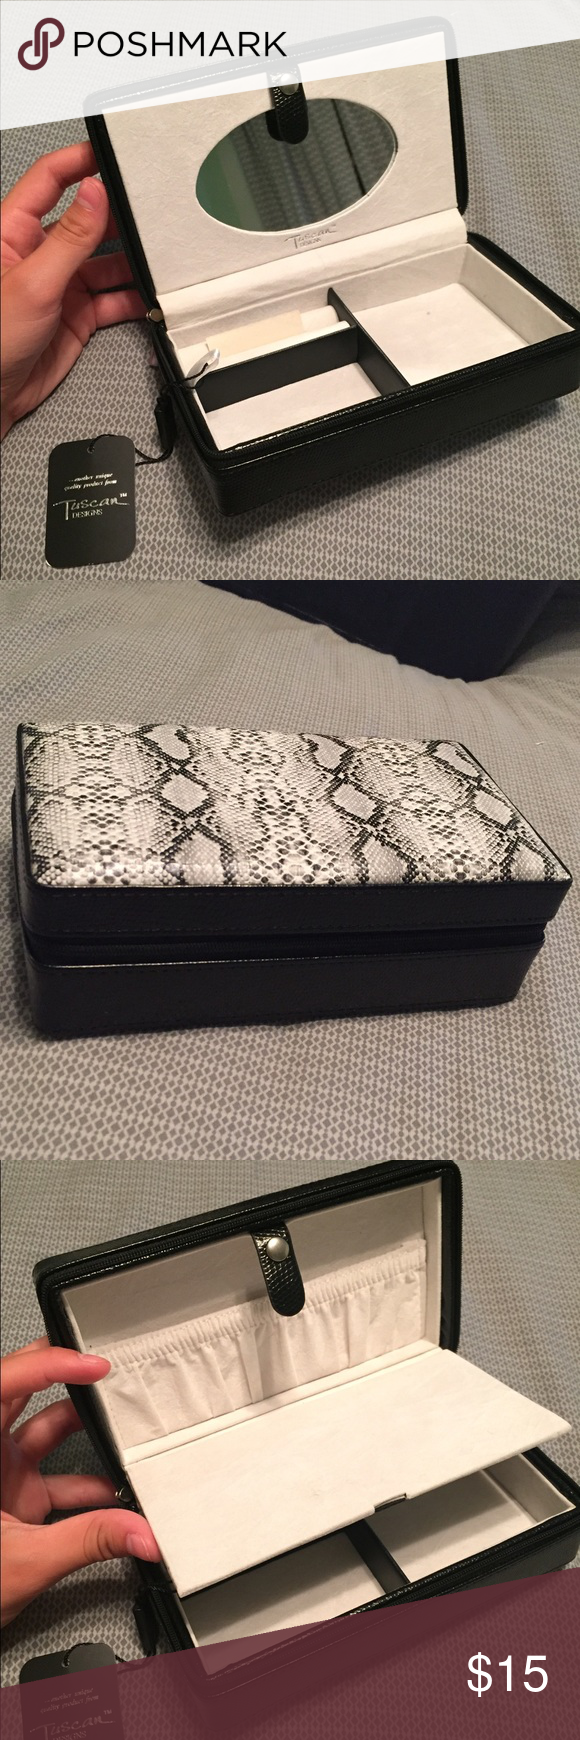 Tuscan Designs Travel Jewelry Box Travel jewelry box Tuscan